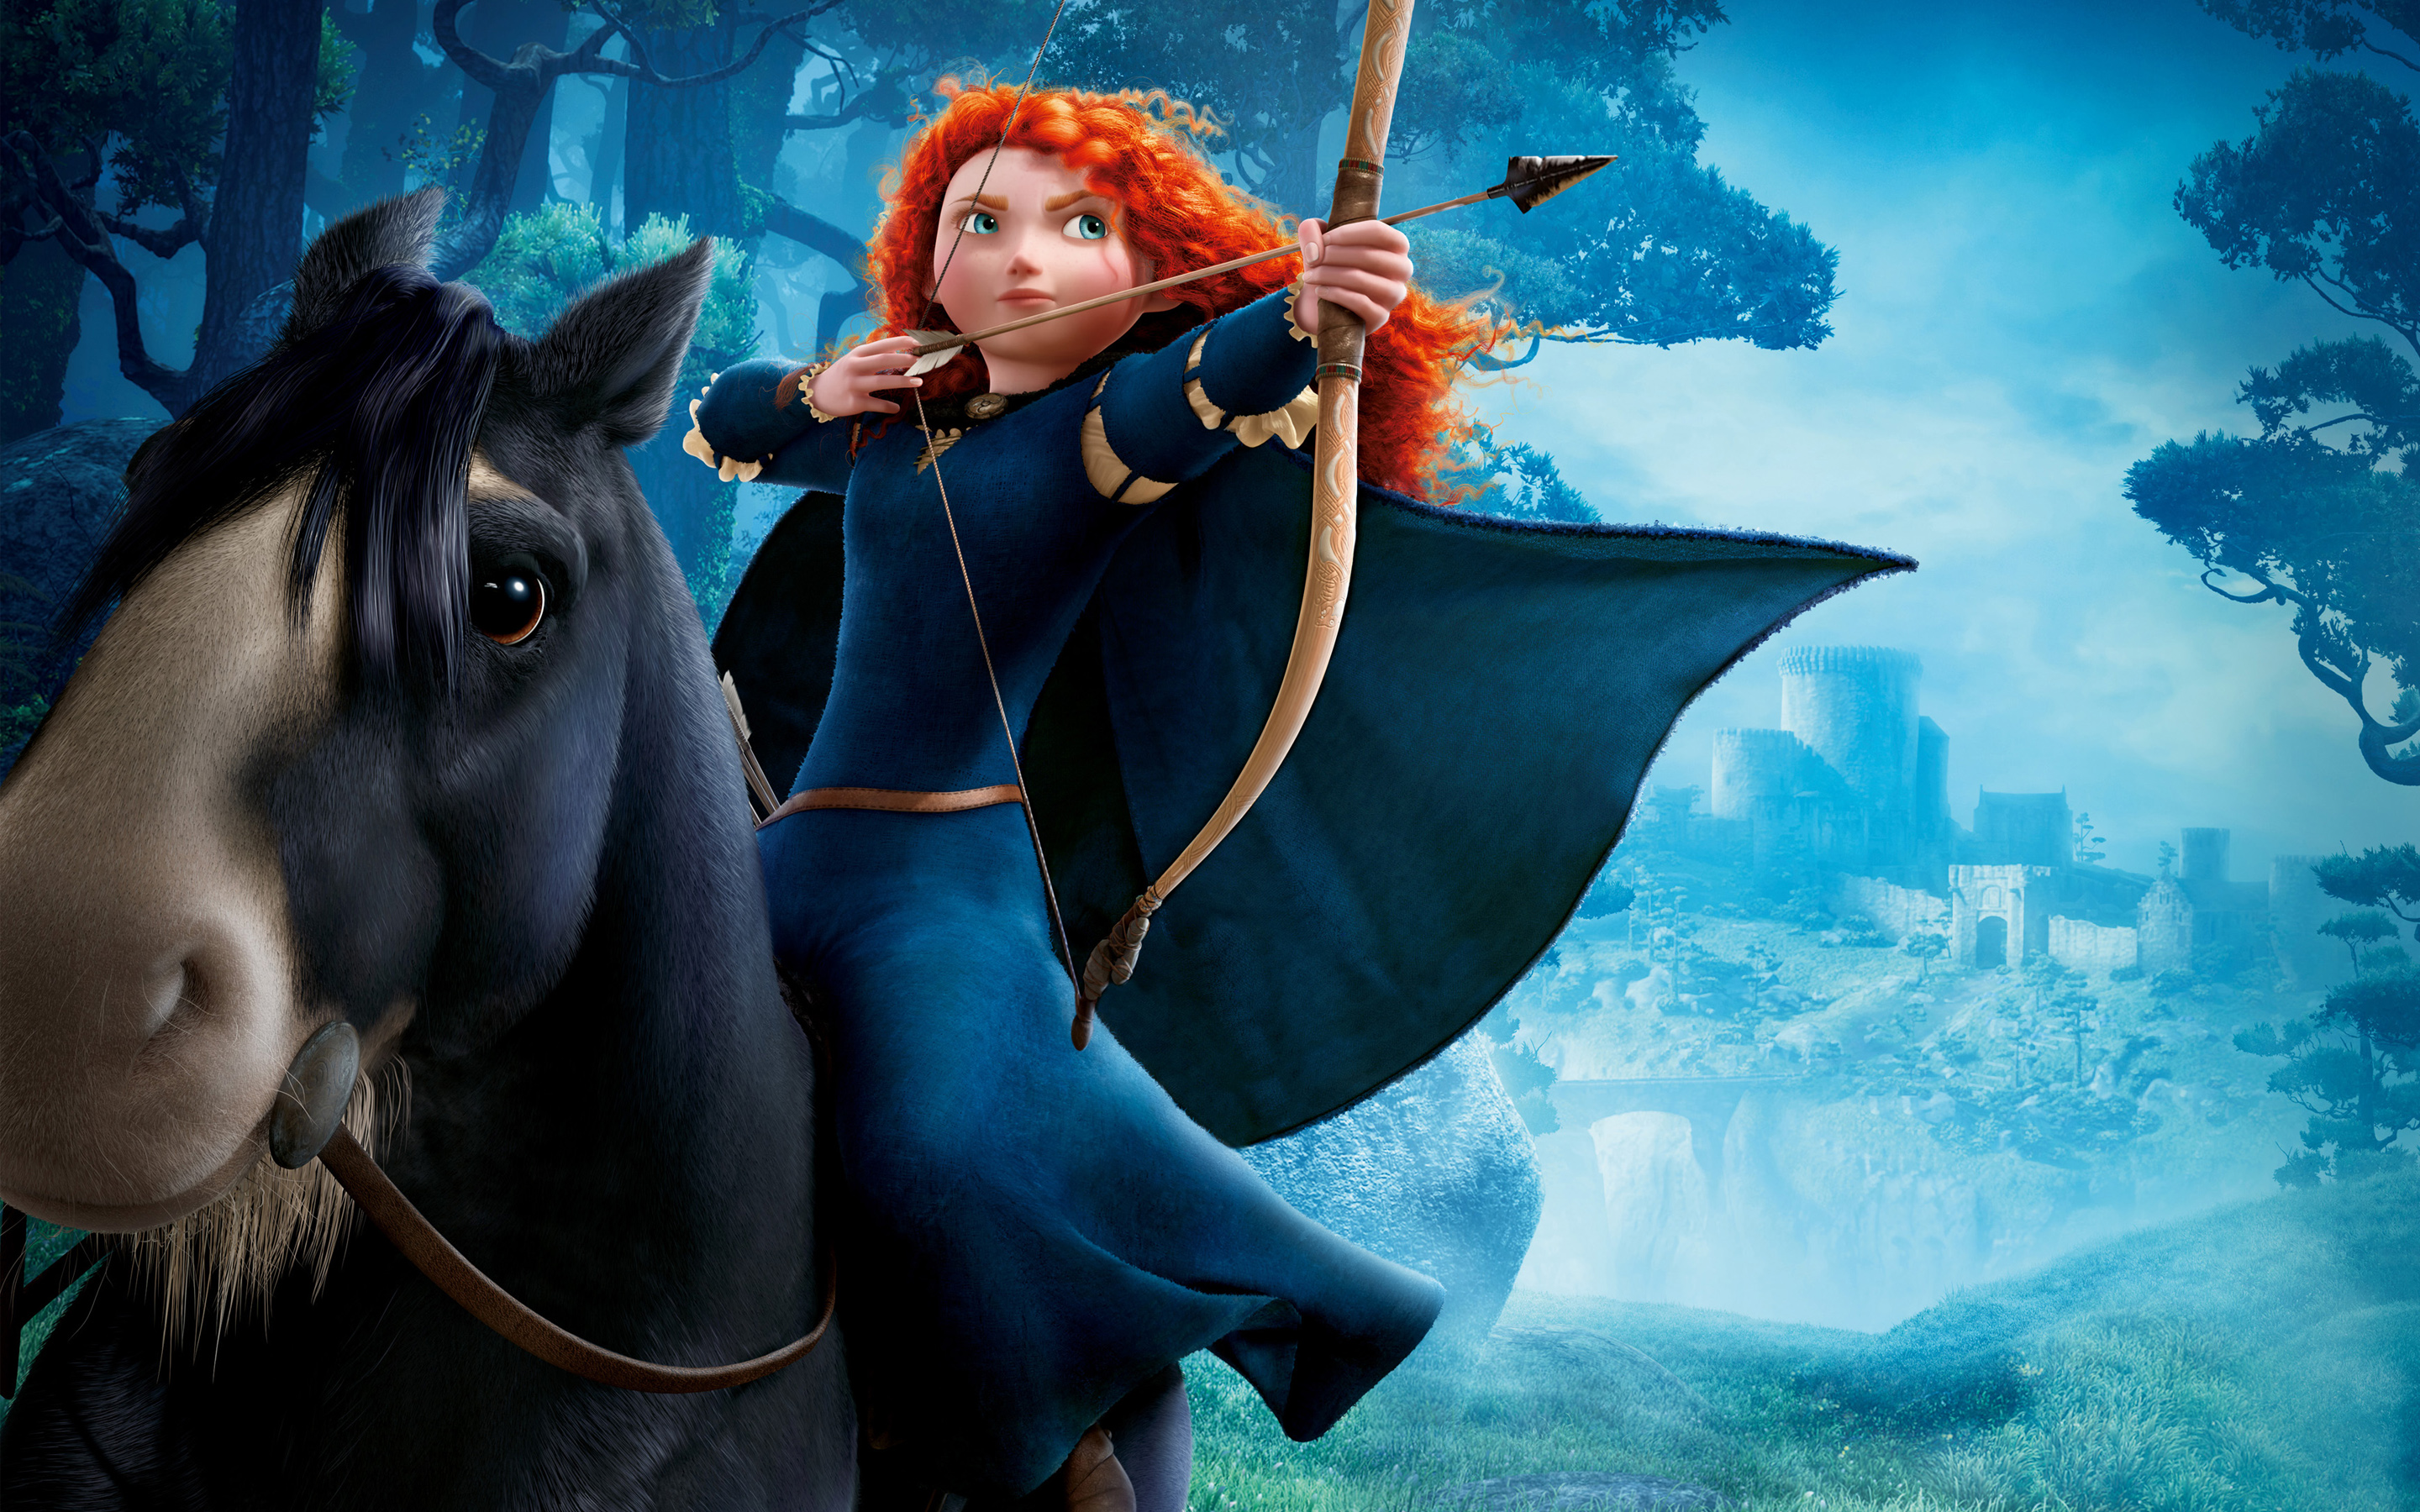 Princess Merida 700.49 Kb